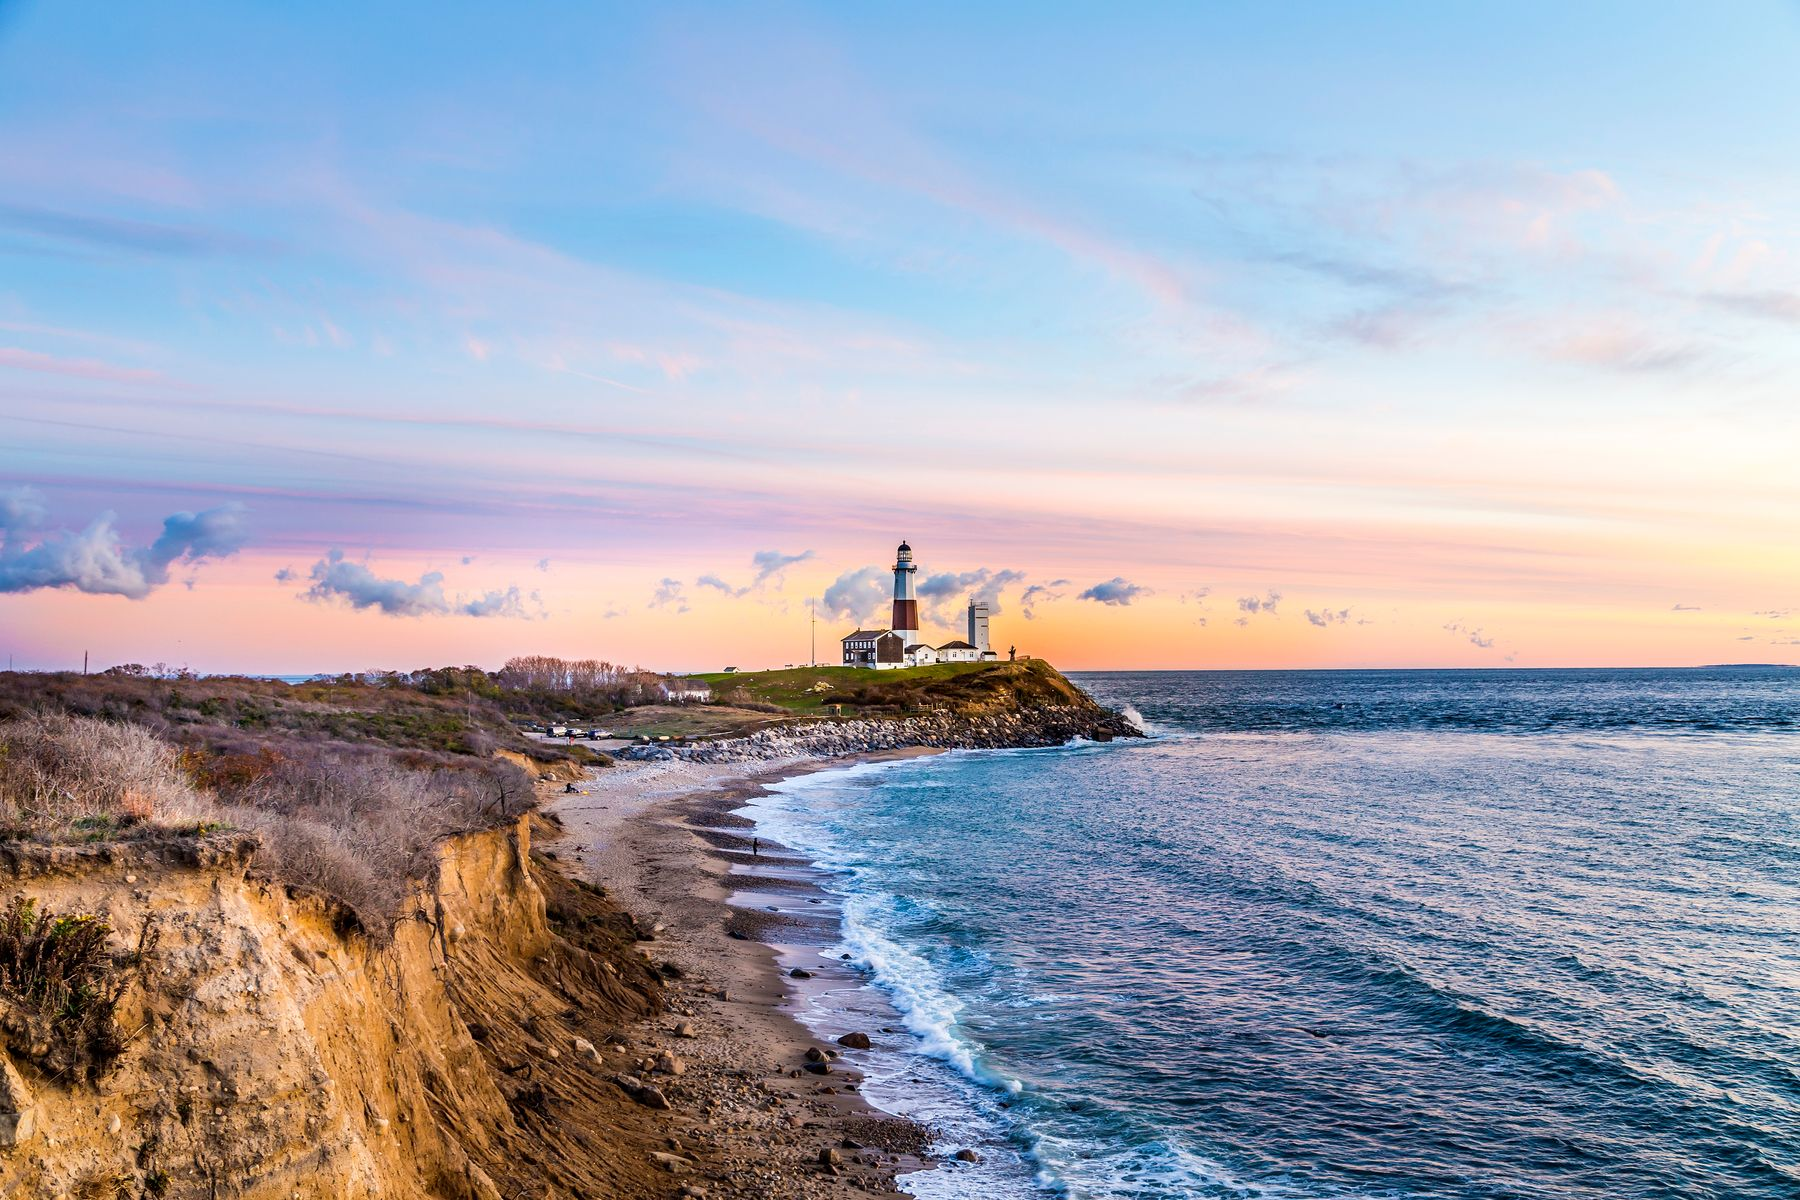 Montauk Lighthouse on the cliff at sunset, most eastern point in New York